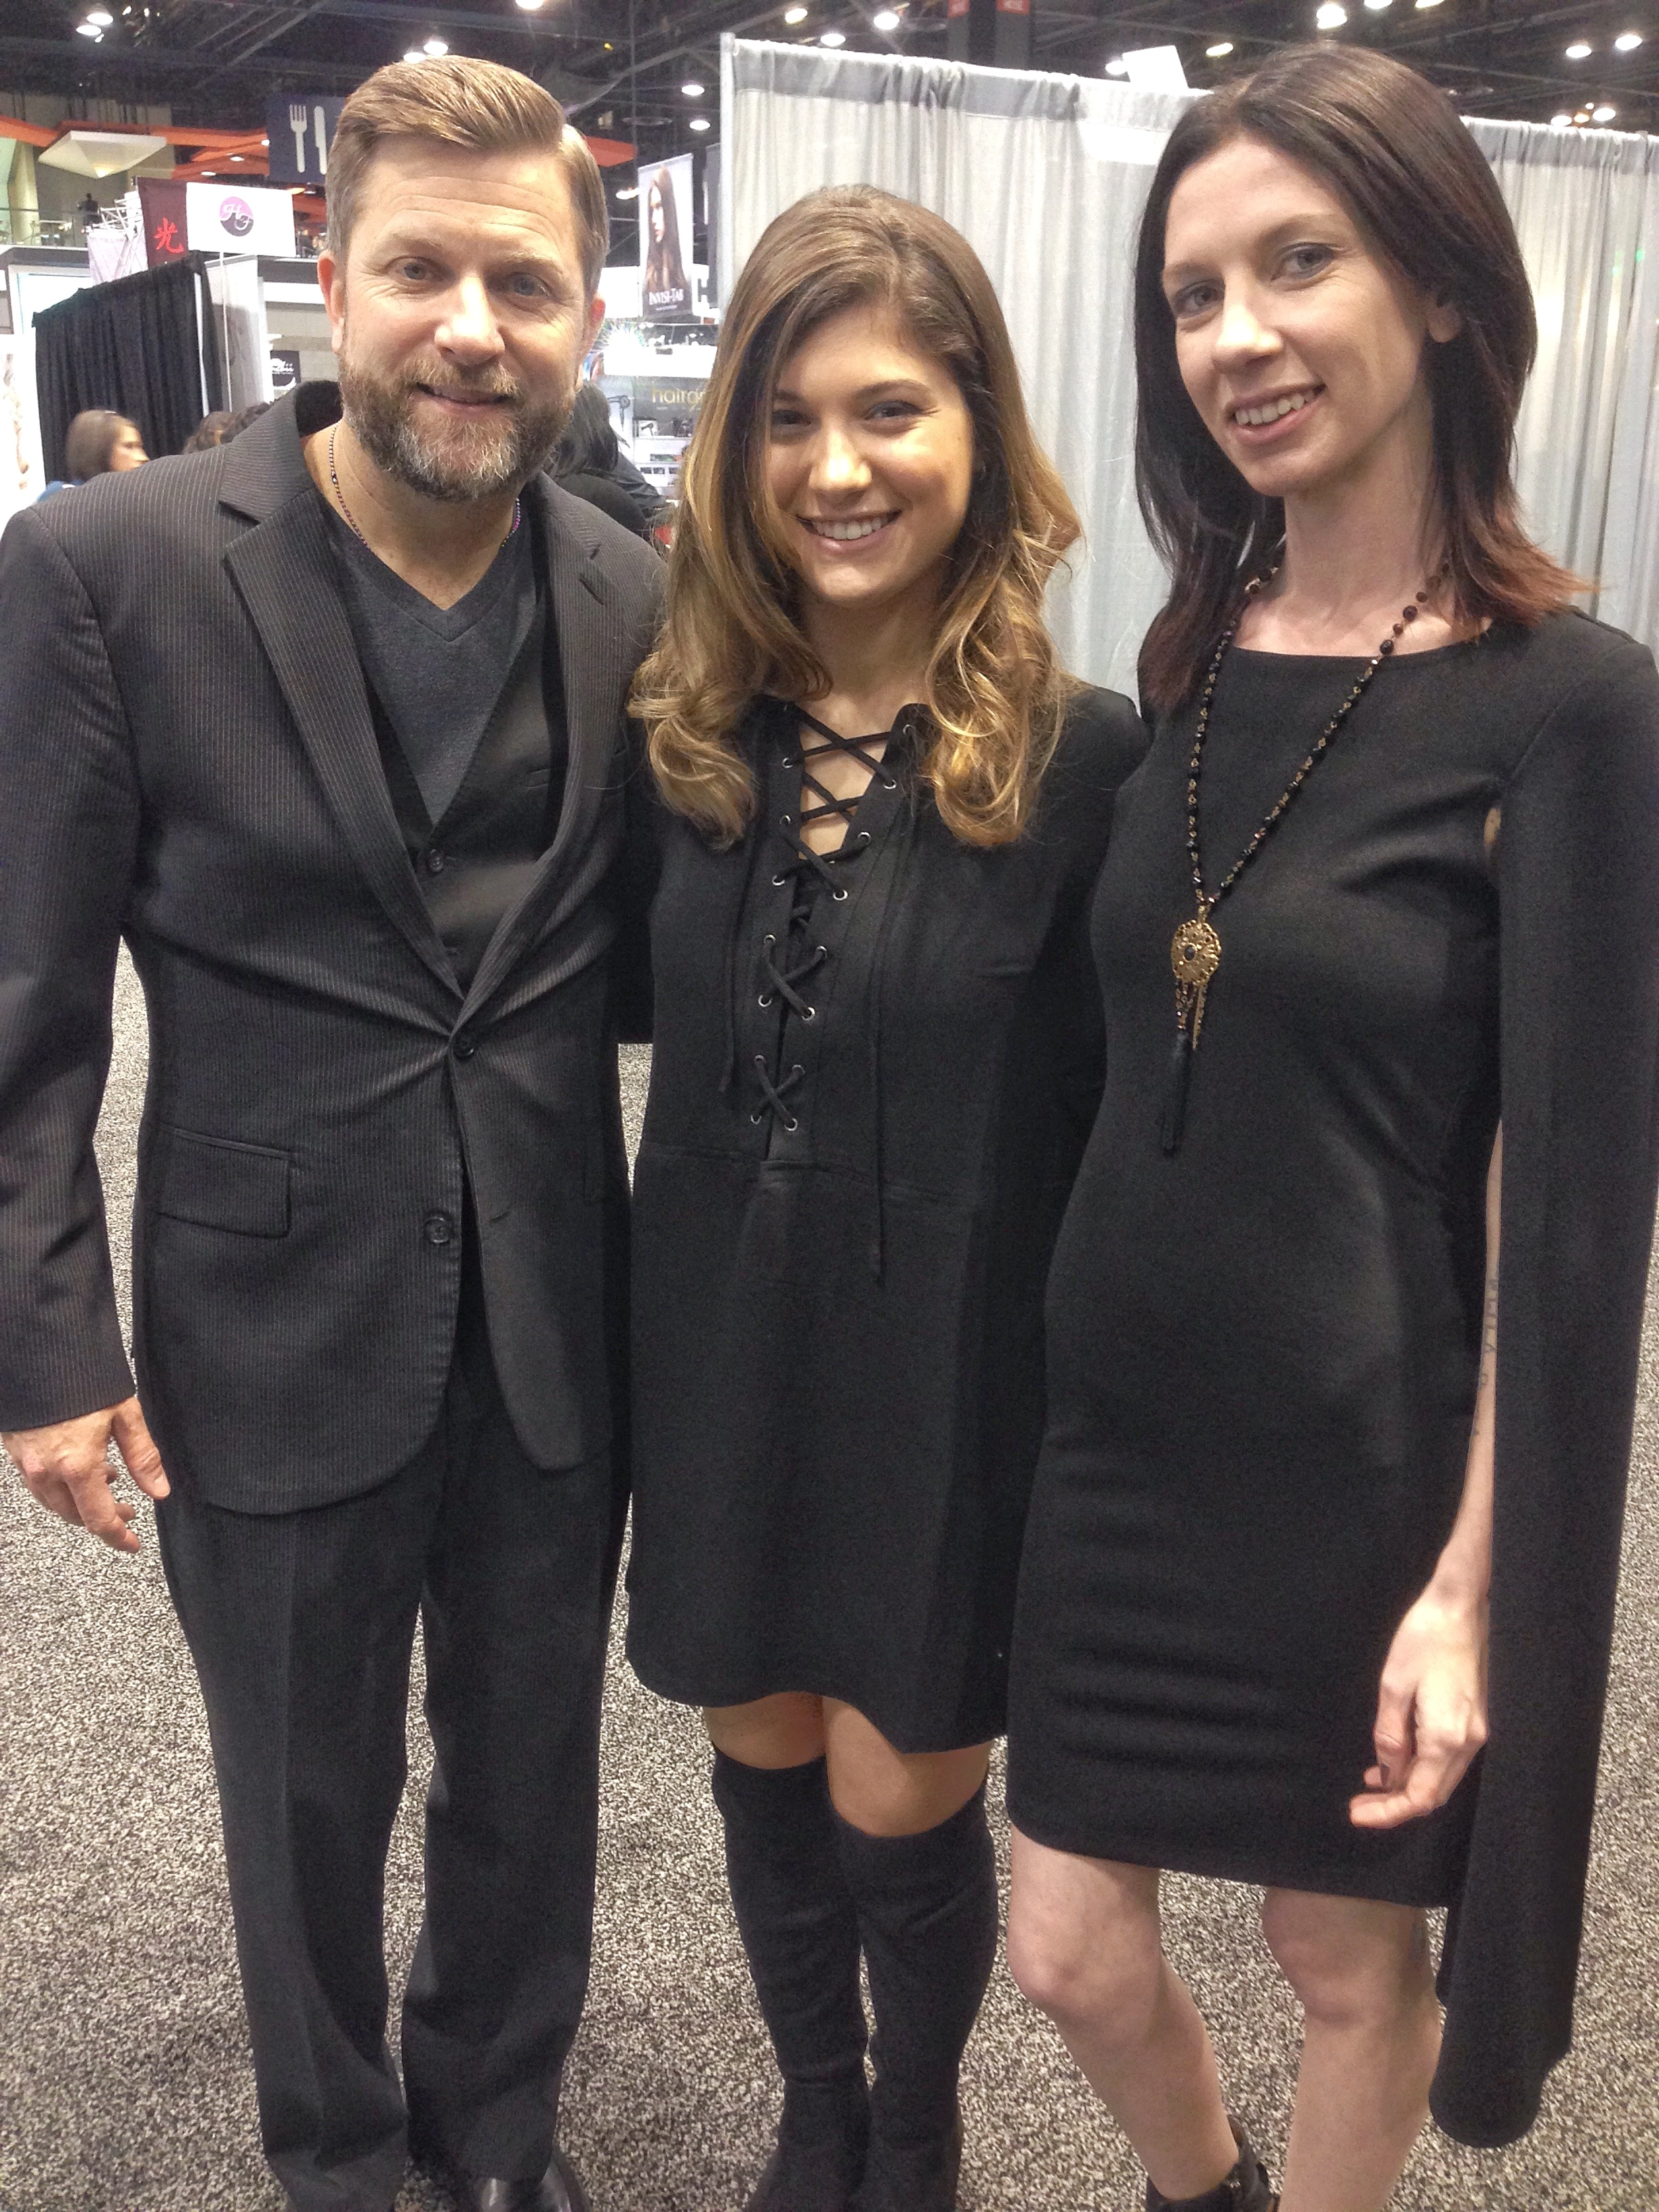 Diary of a Beauty Editor: My Cut and 'Reverse' Balayage…At a Tradeshow?